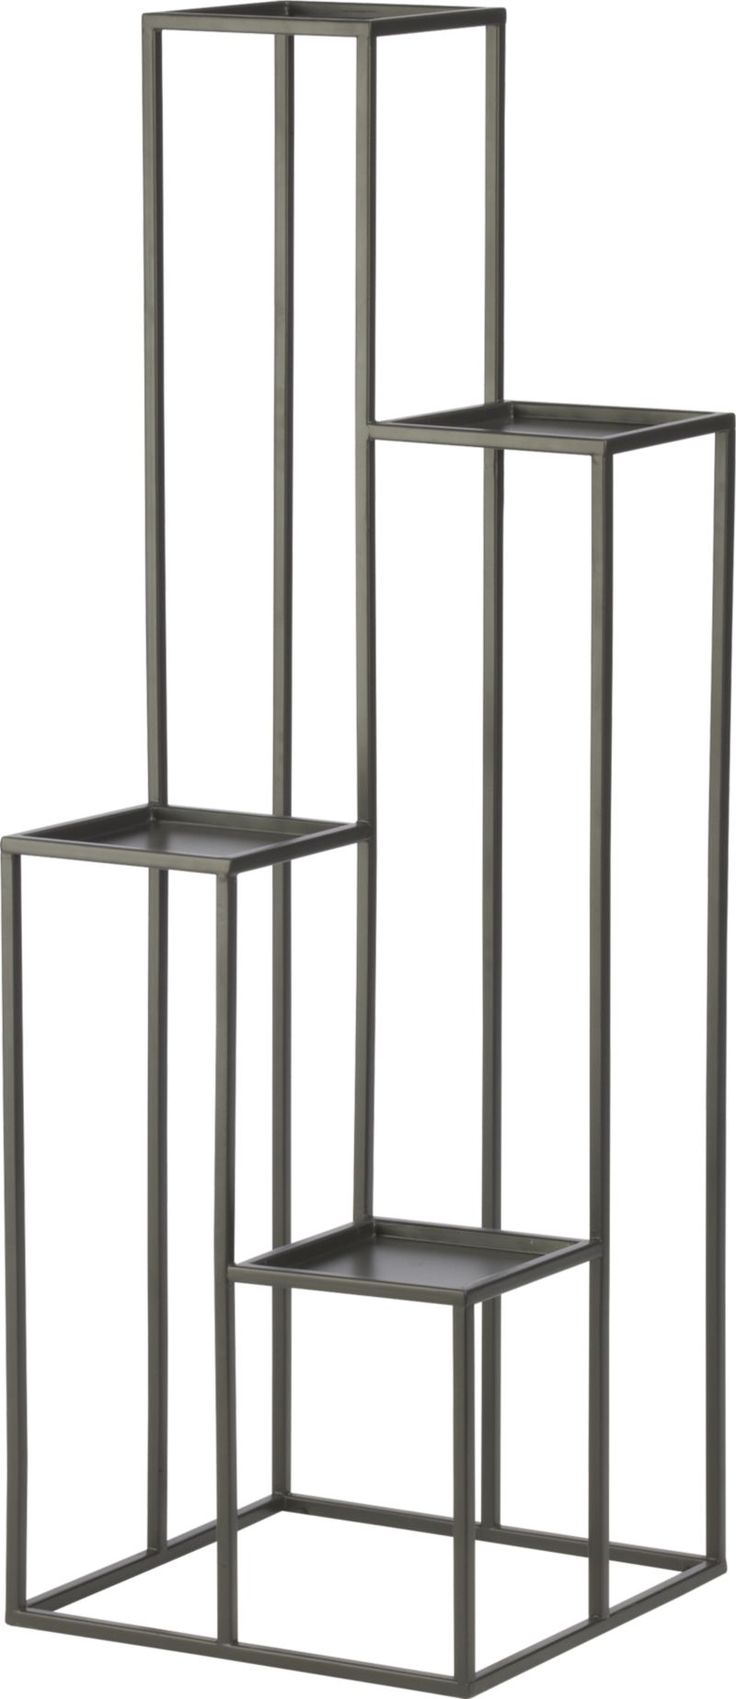 Quadrant Plant Stand in Garden, Patio   Crate and Barrel